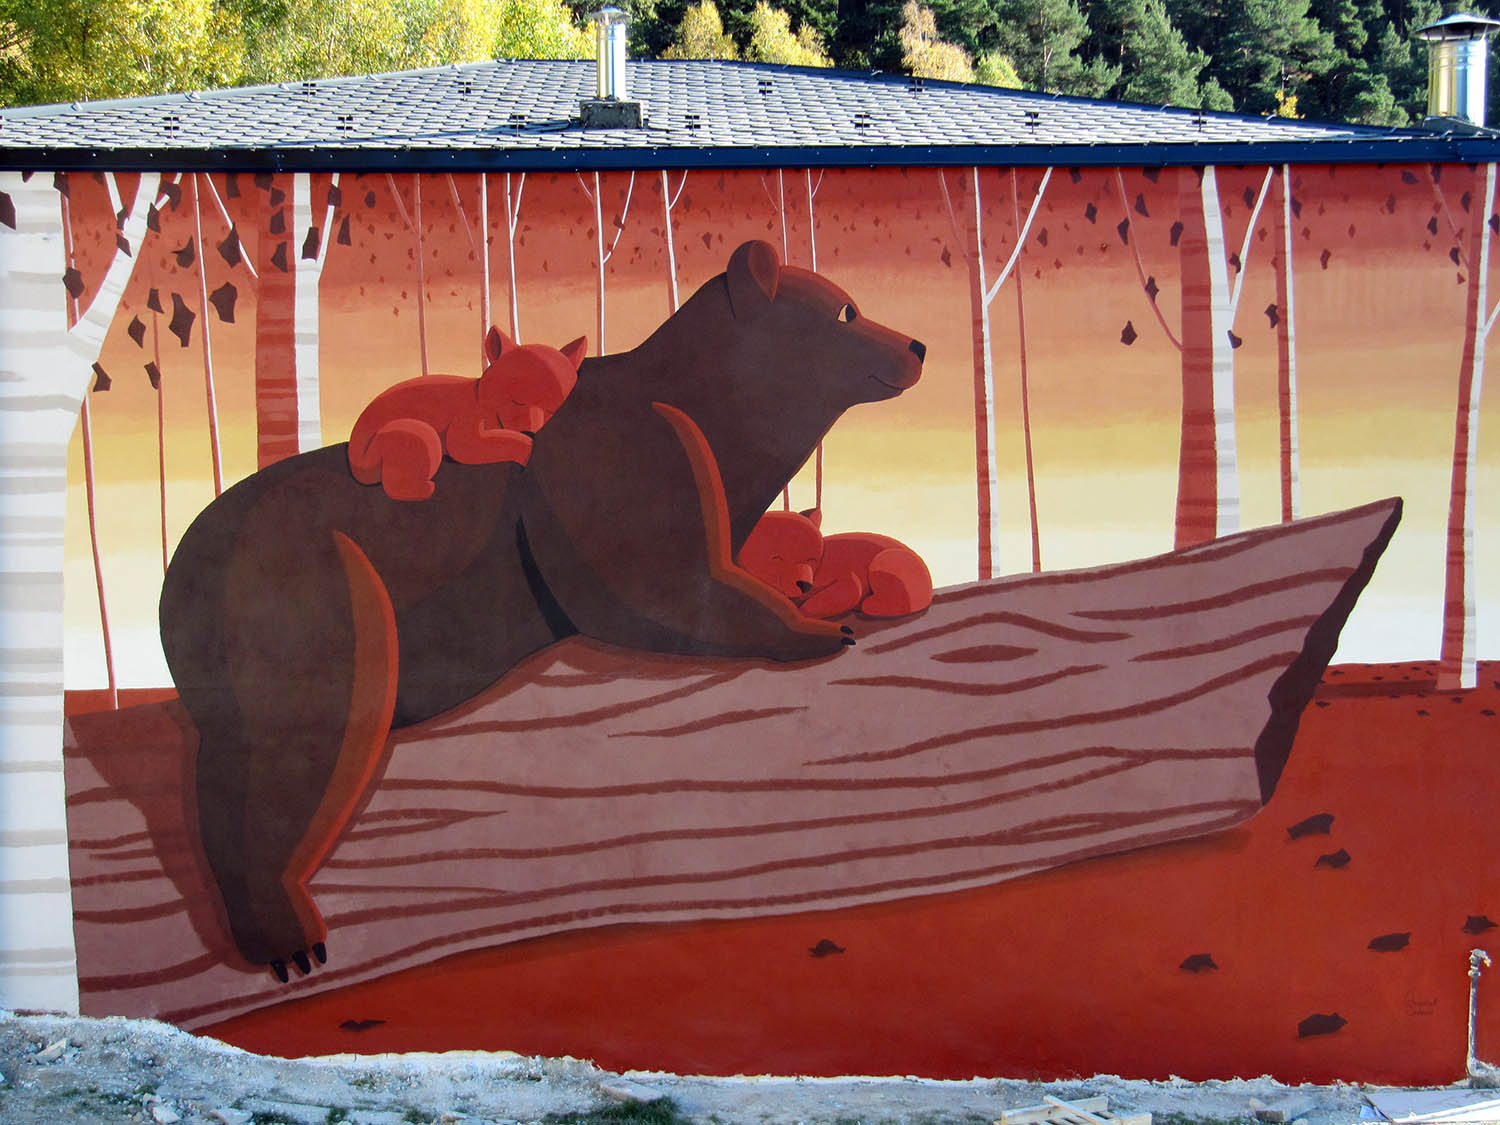 Mural family of bears